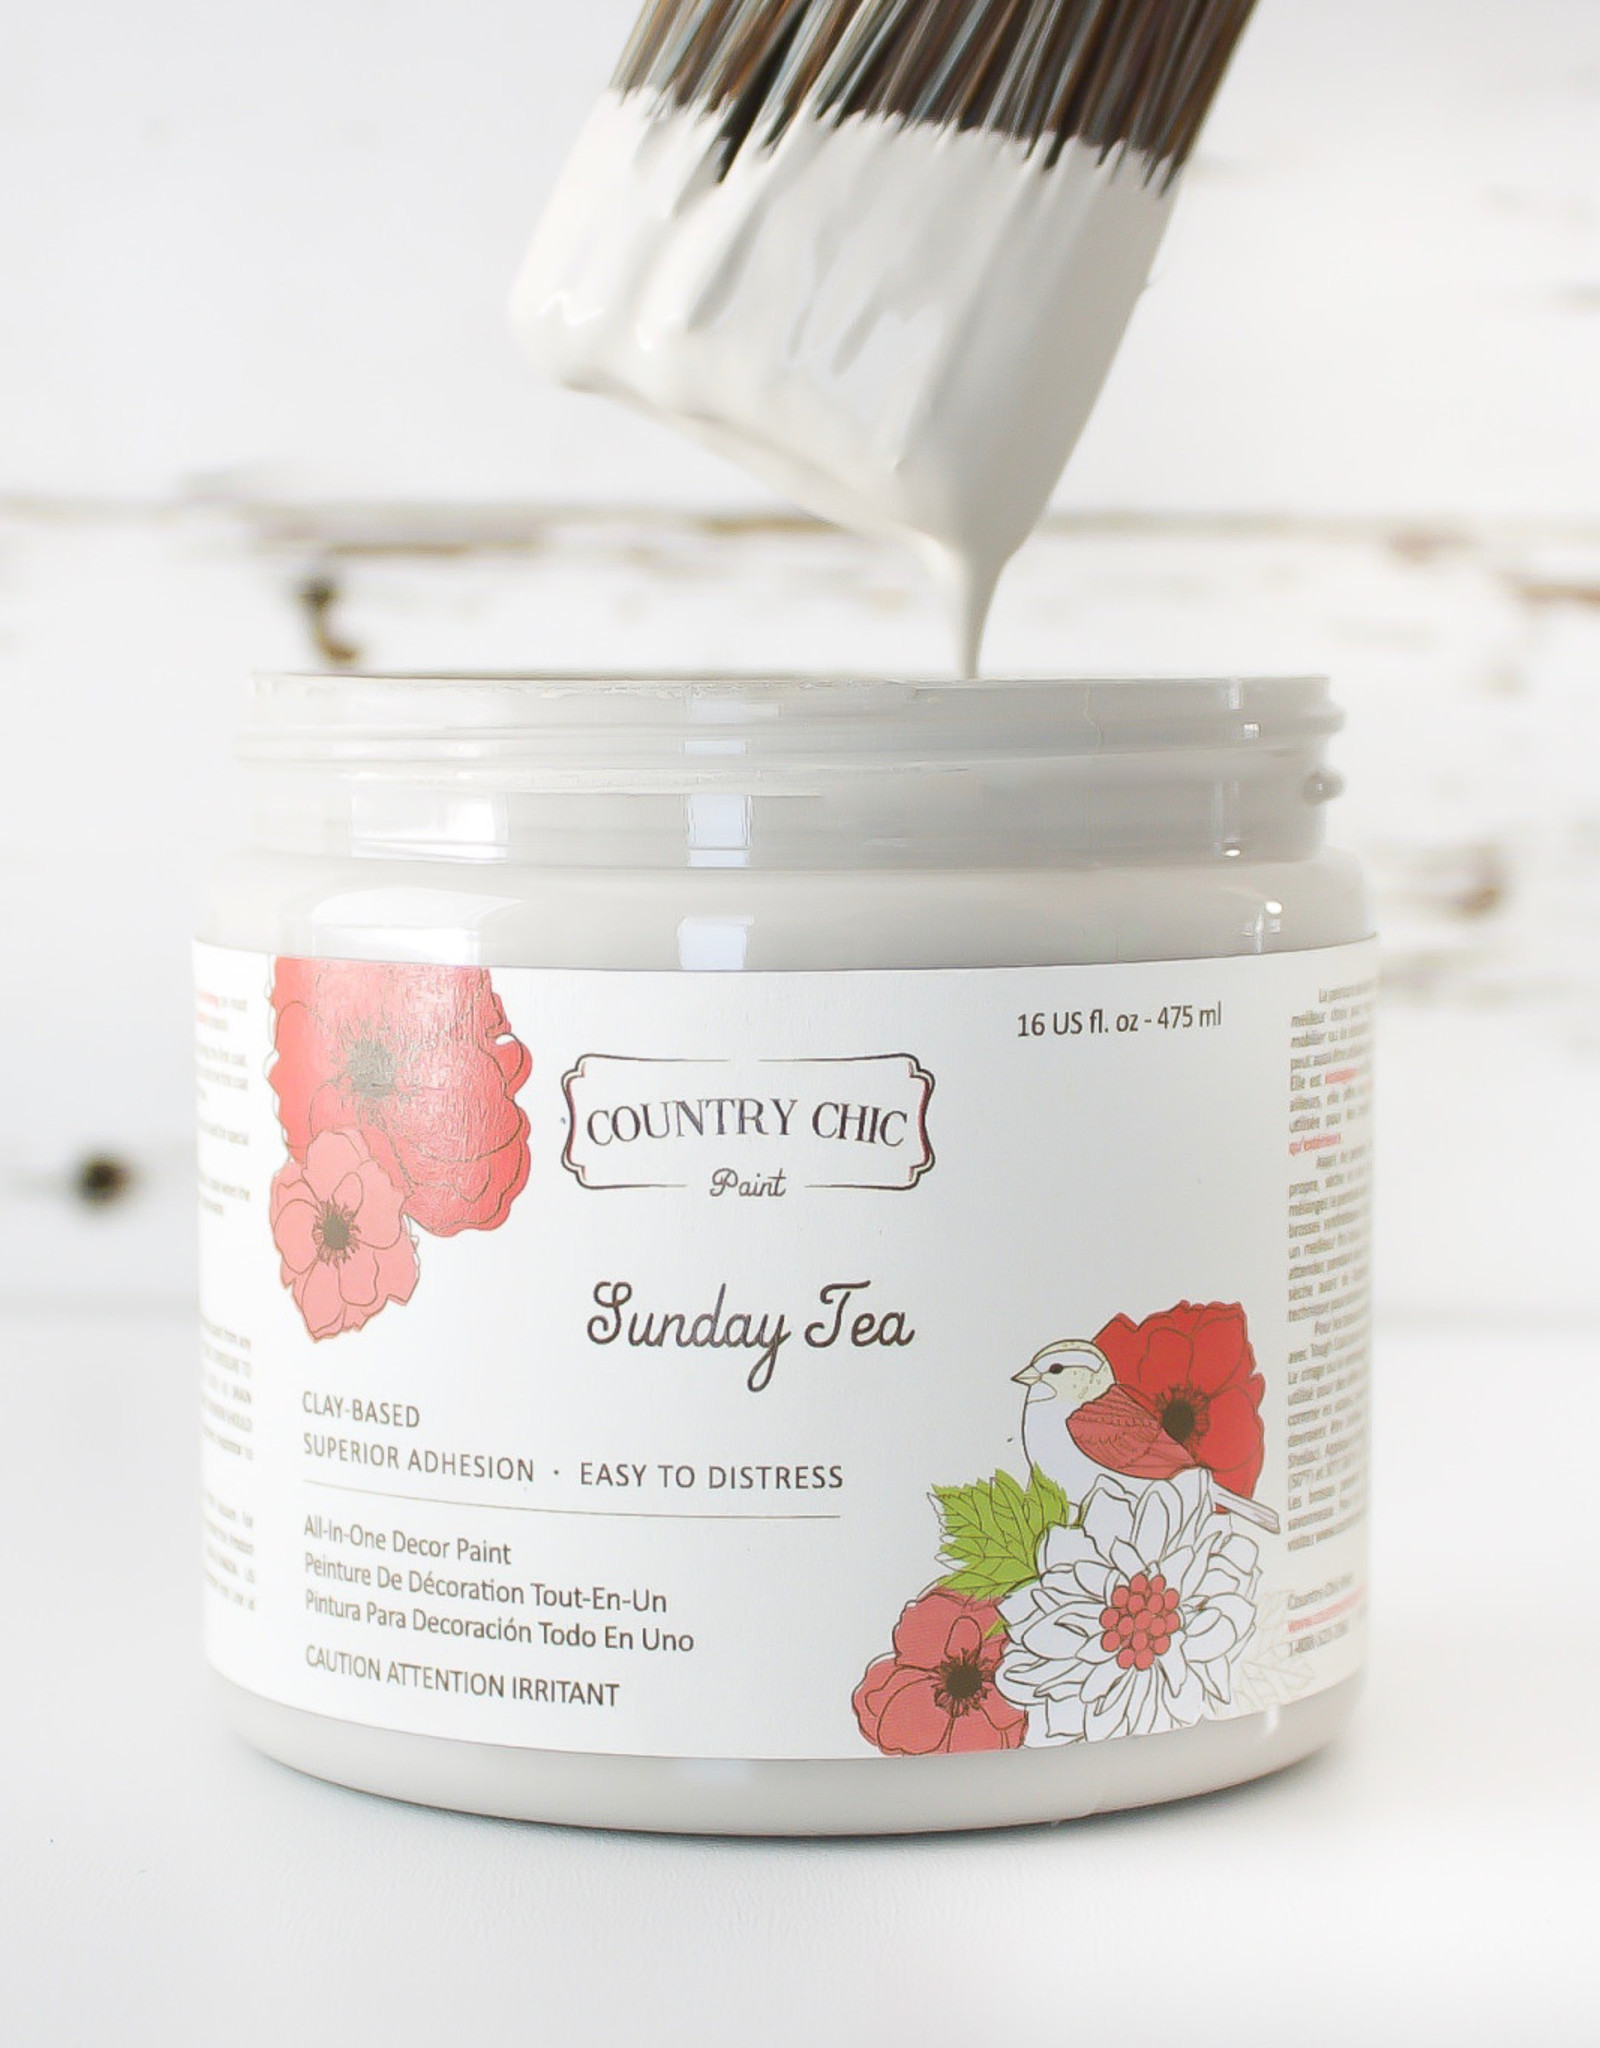 Country Chic Country Chic Paint Sample - 4oz Sunday Tea